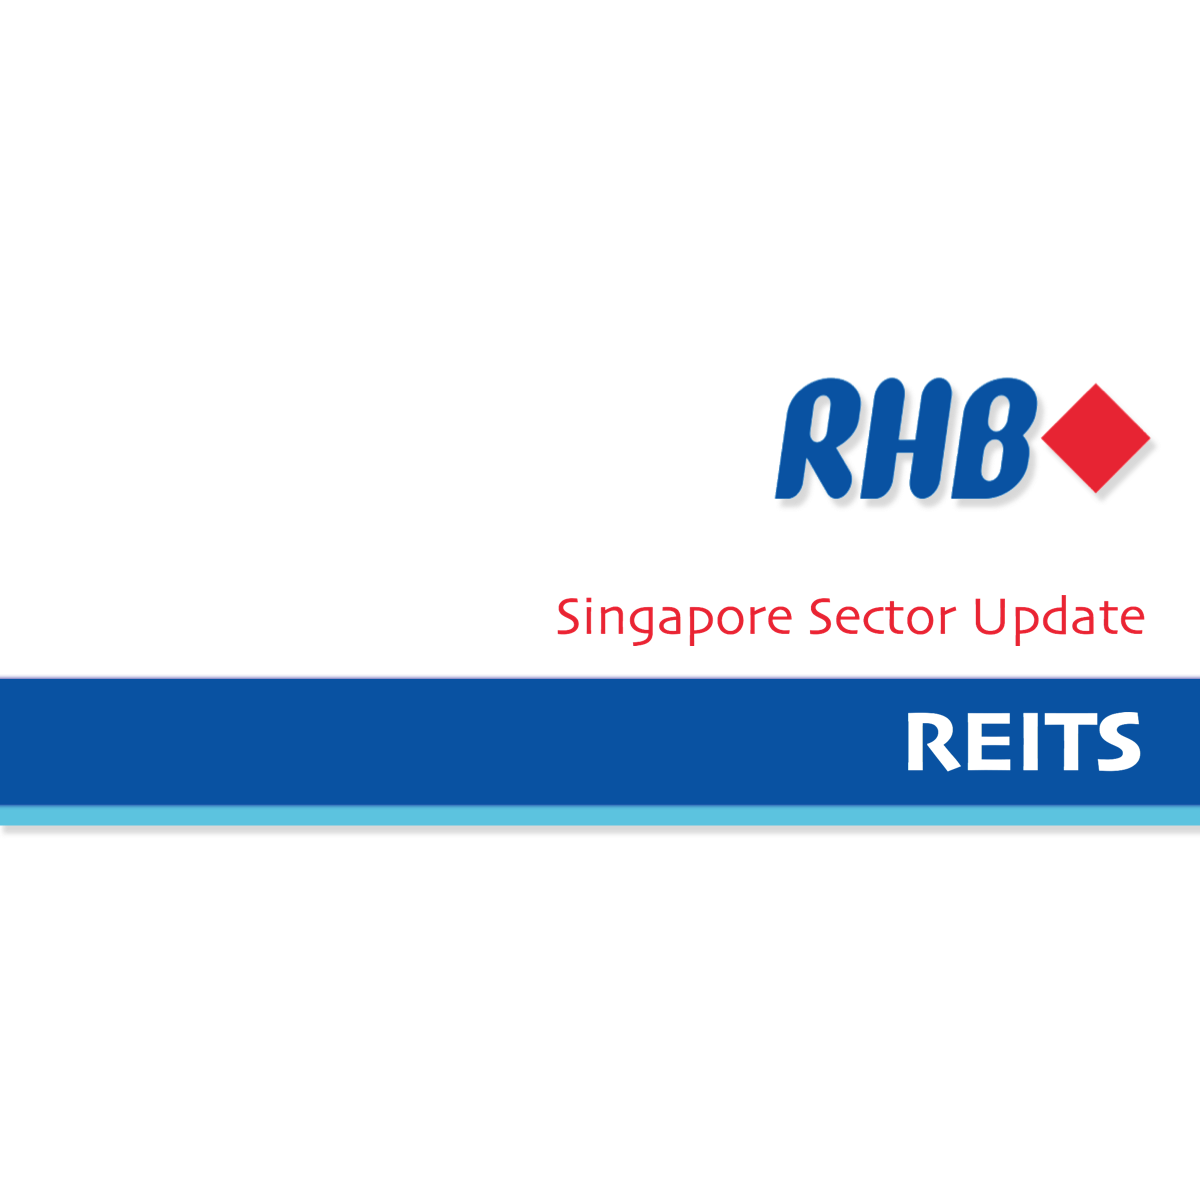 Singapore REITs - RHB Investment Research | SGinvestors.io